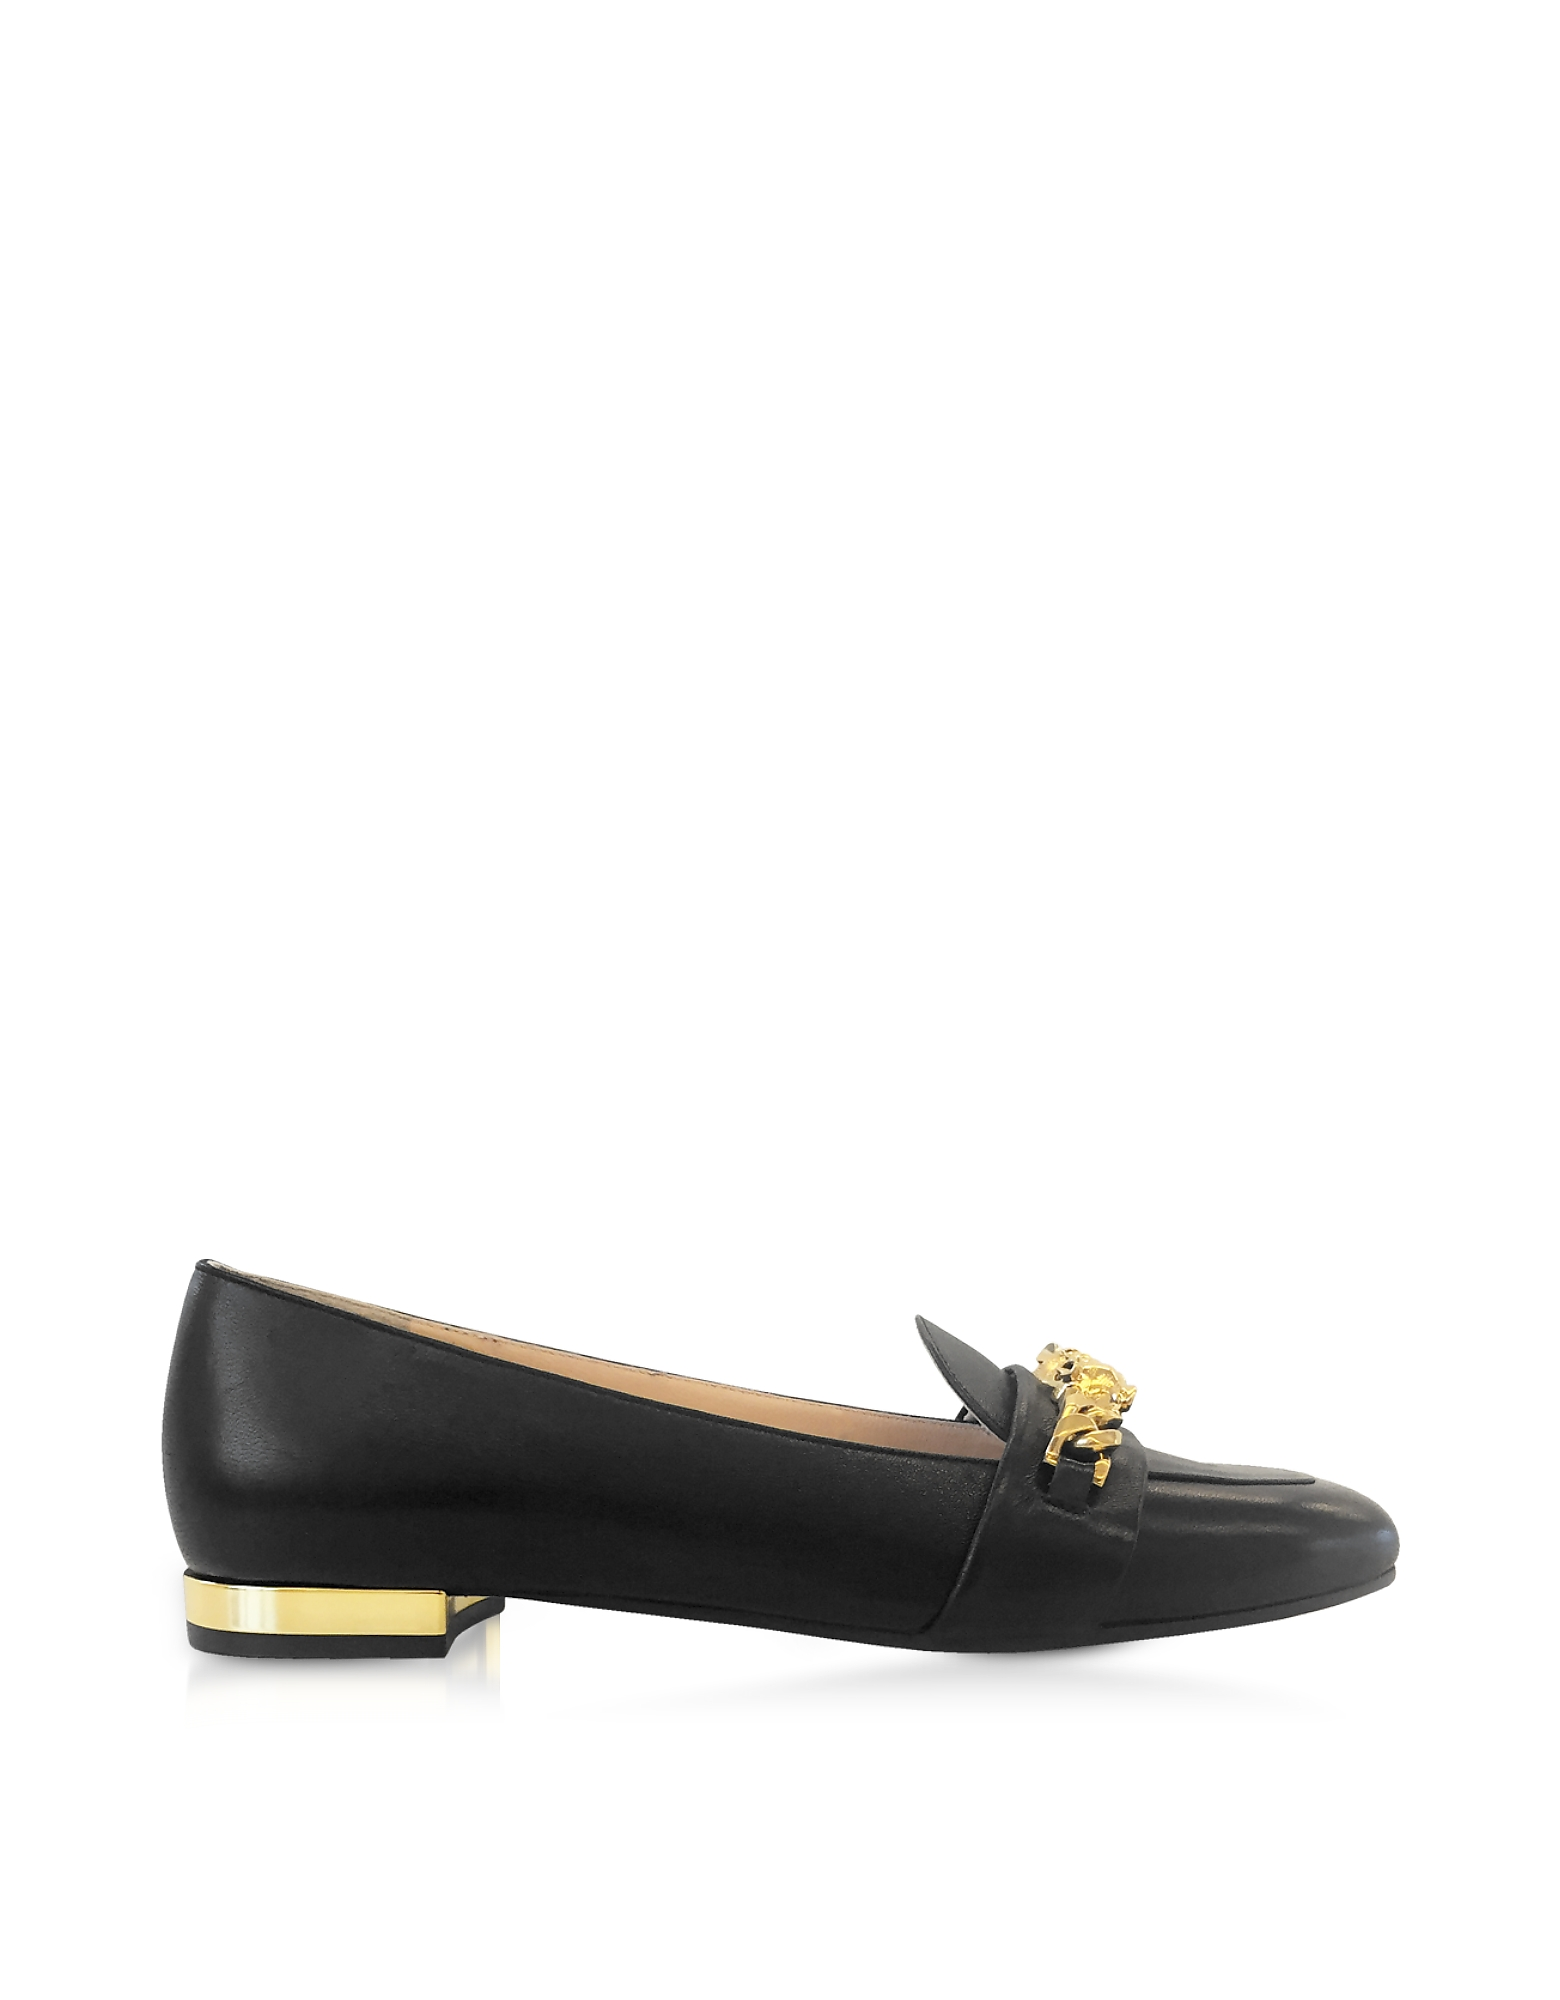 Charlotte Olympia Shoes, Black Leather Loafers